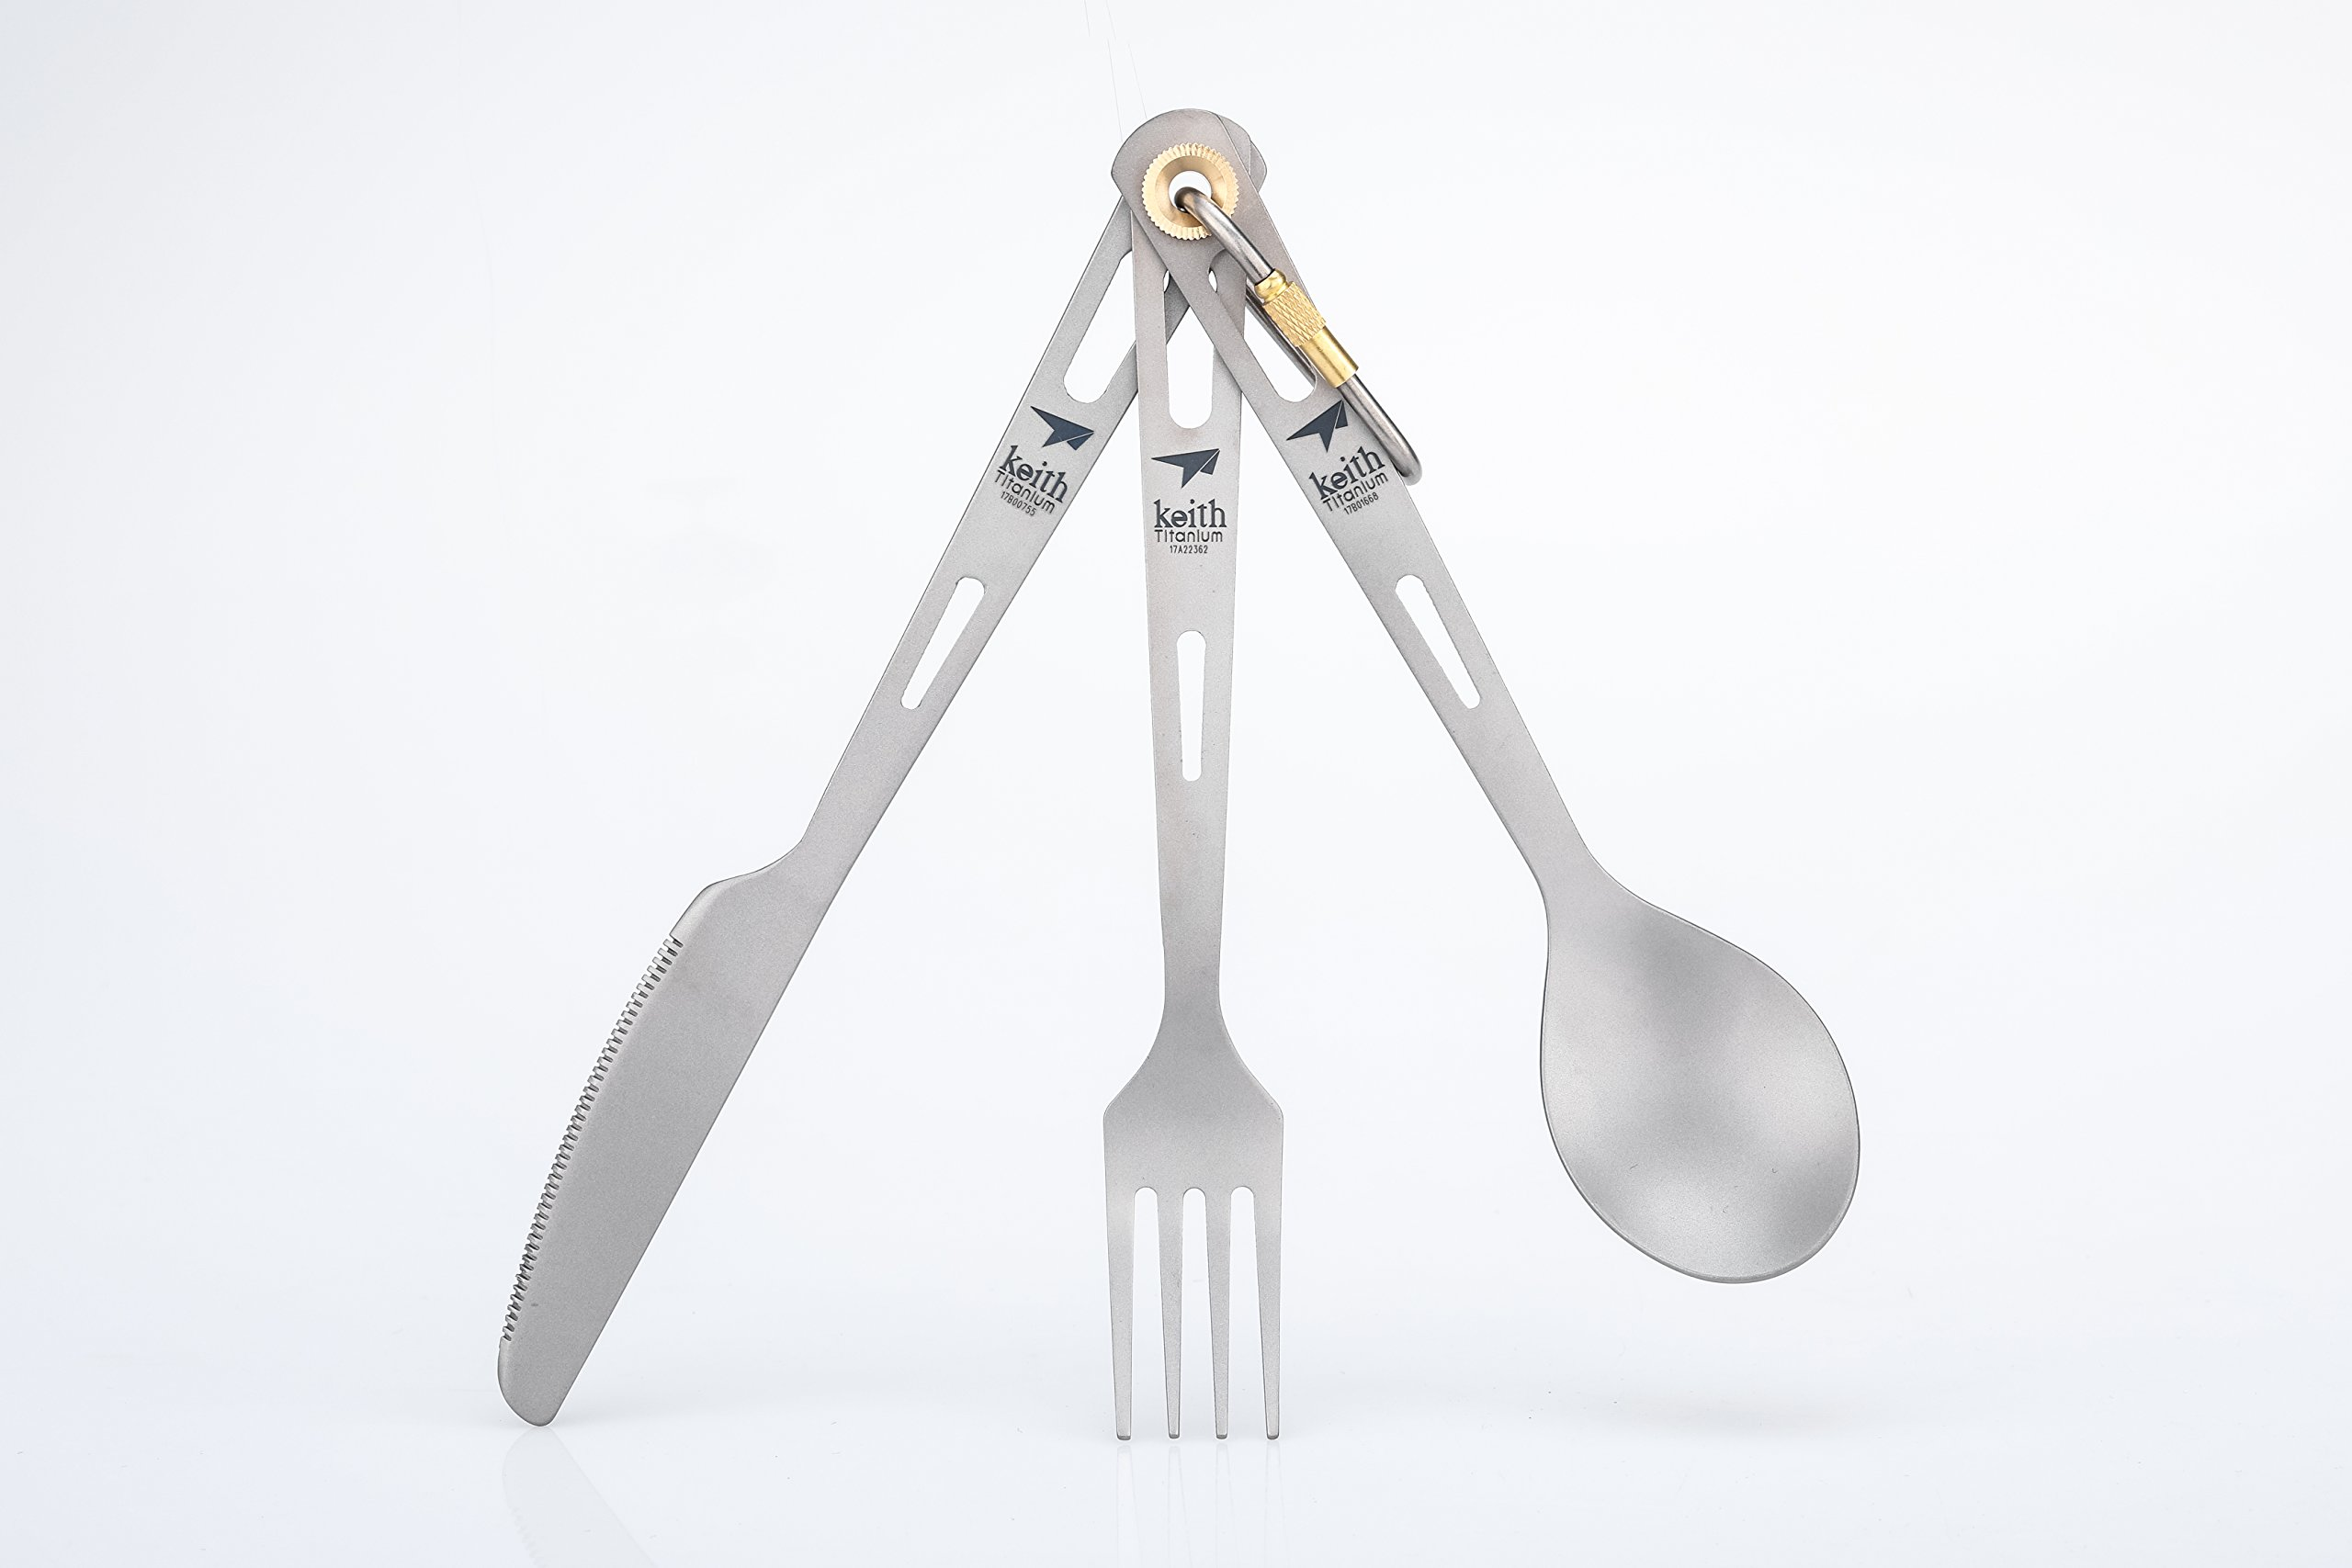 Keith Titanium Ti5310 3-Piece Cutlery Set by Keith Titanium (Image #1)